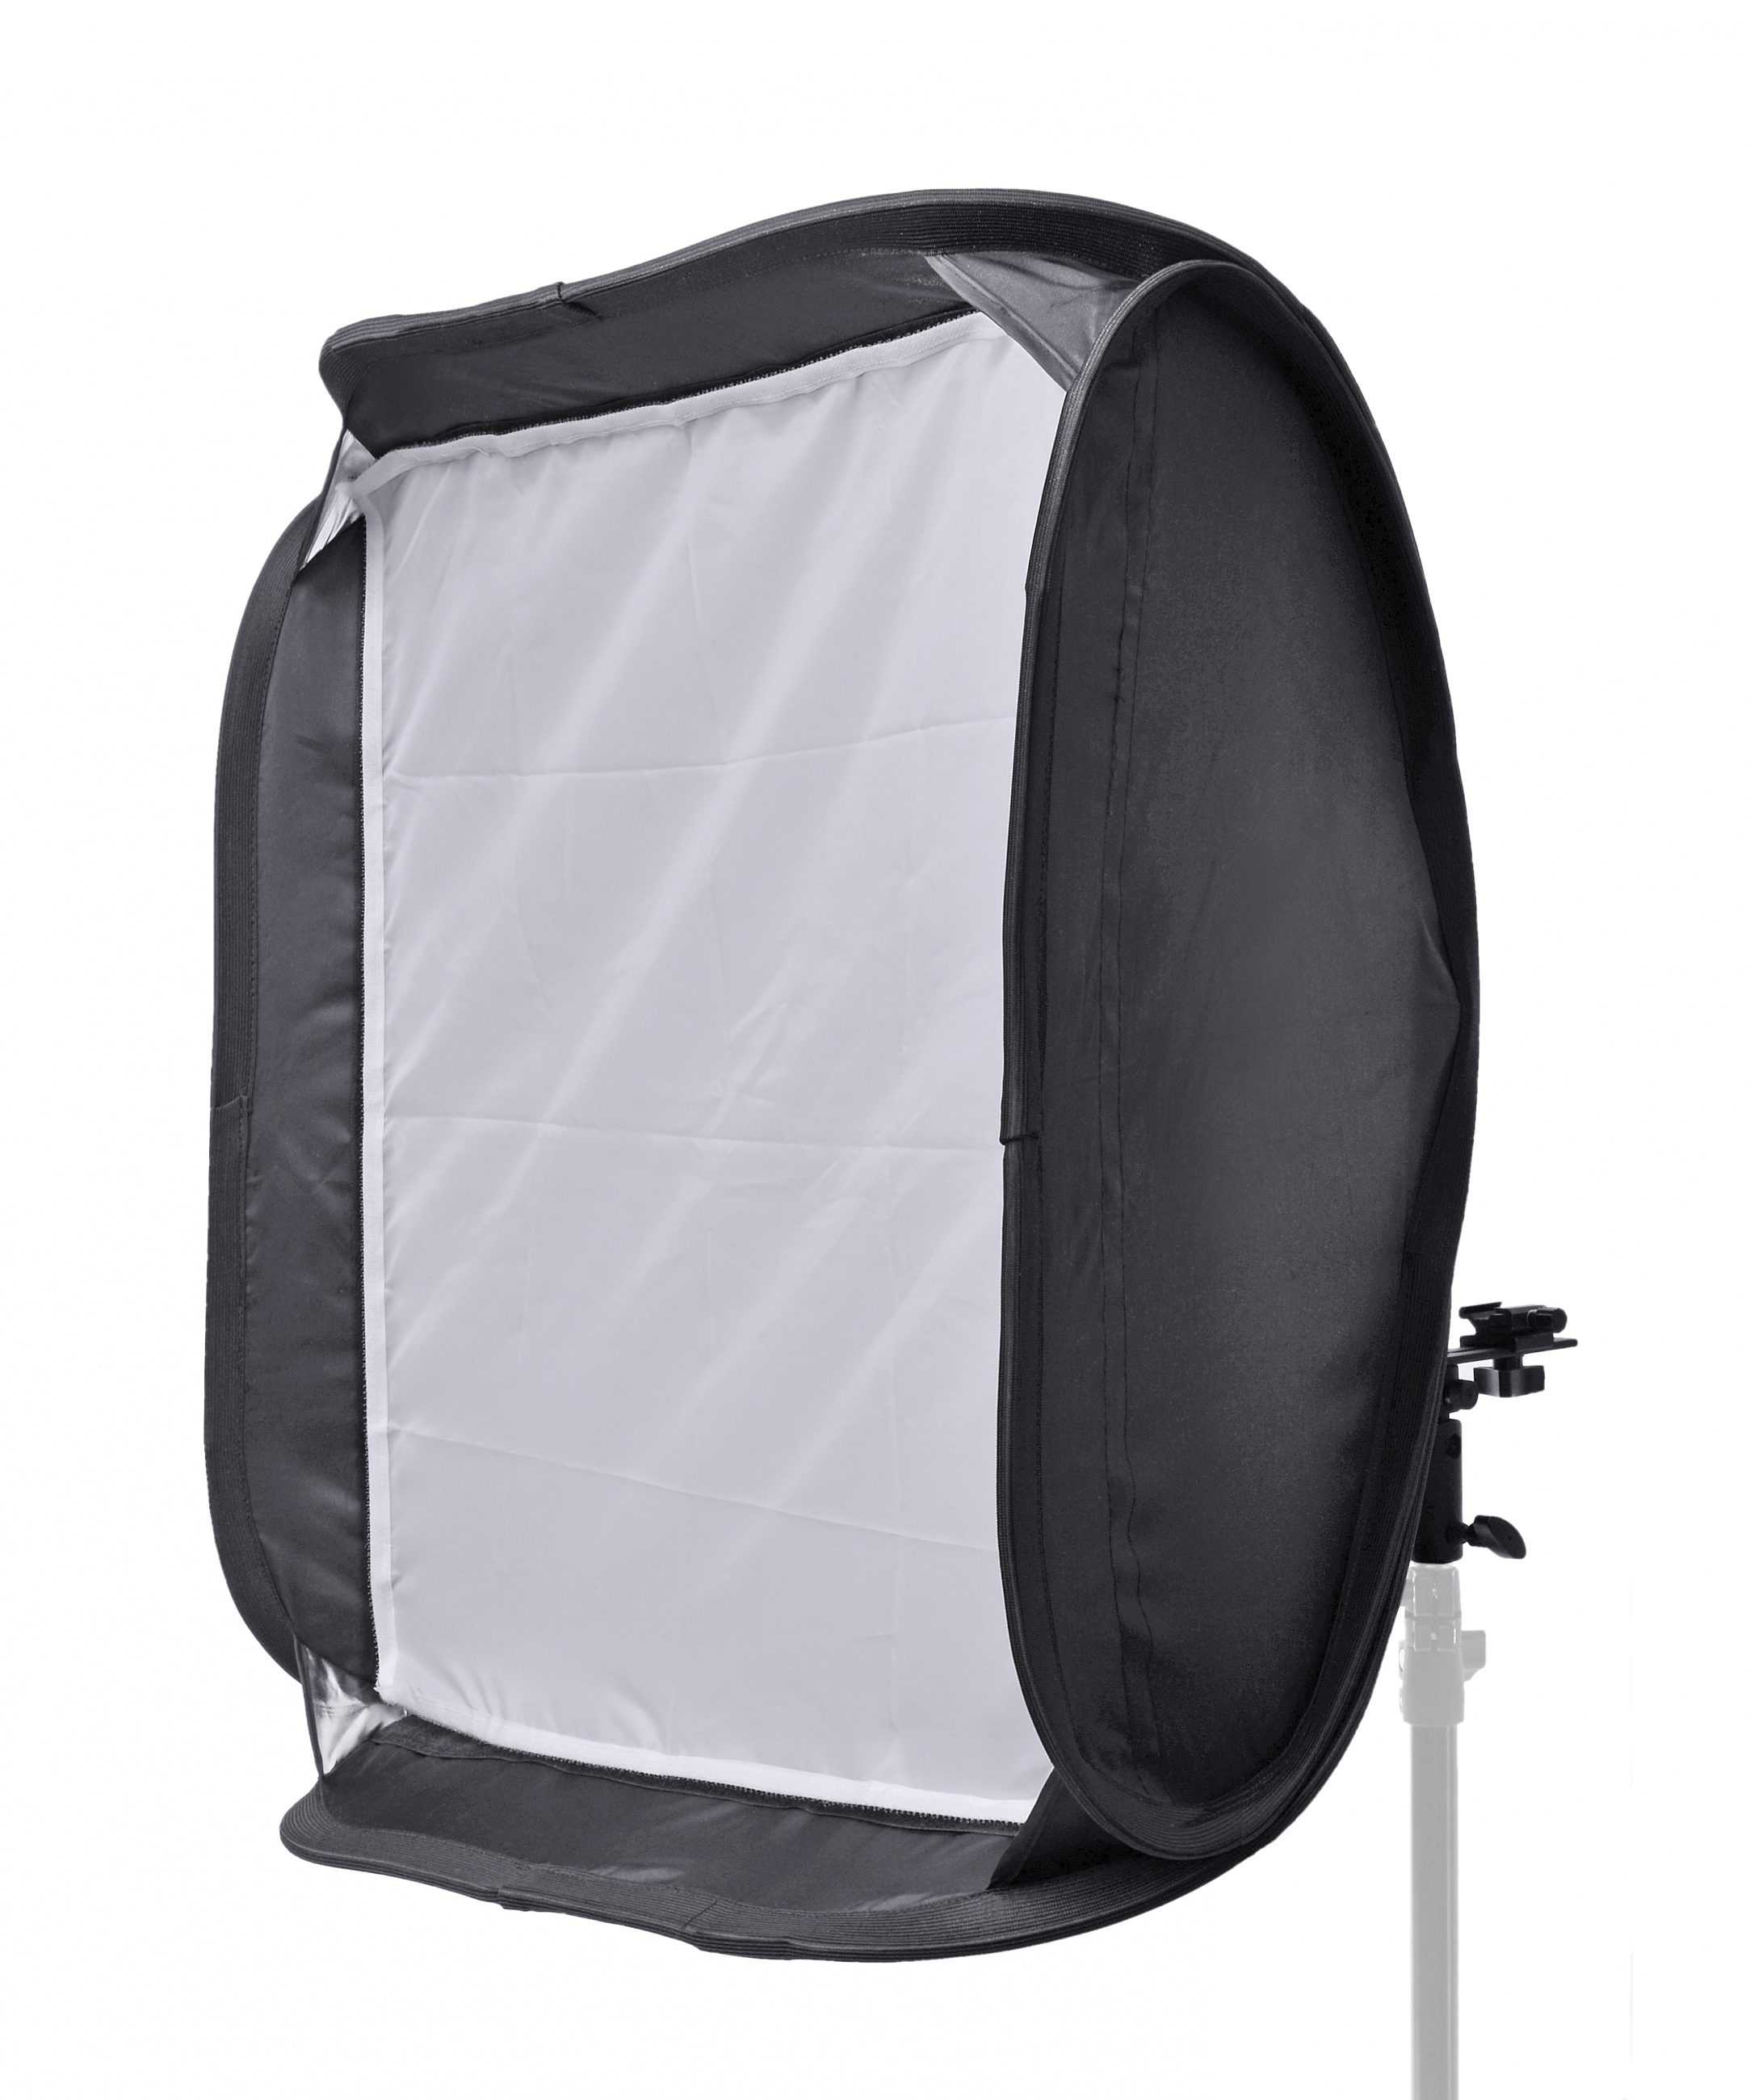 BRESSER Fotostudio »BRESSER SS-20 Quick-Fit Softbox 80x80cm + Wabe«